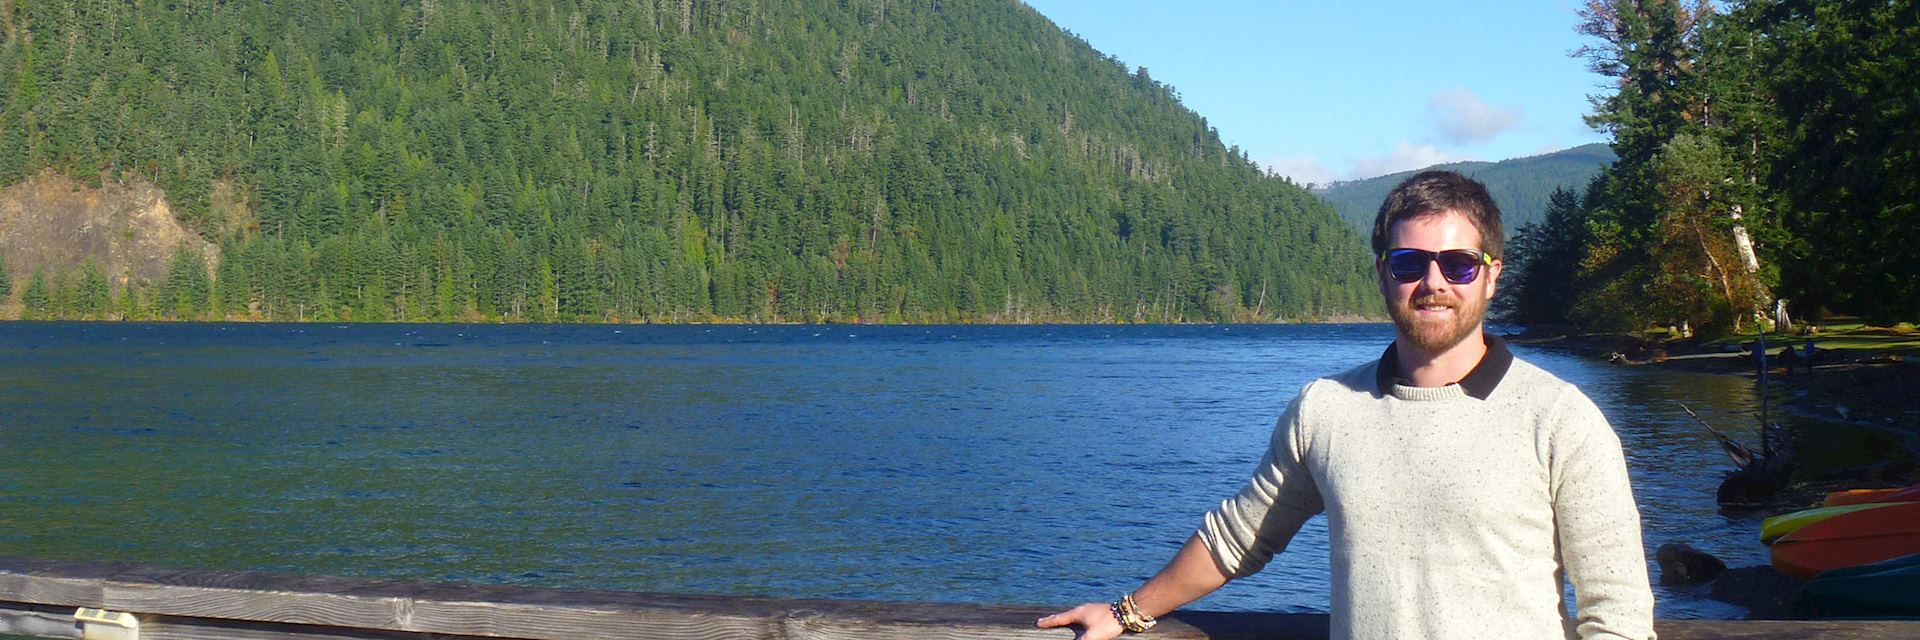 Carl at Lake Crescent, Olympic National Park, USA